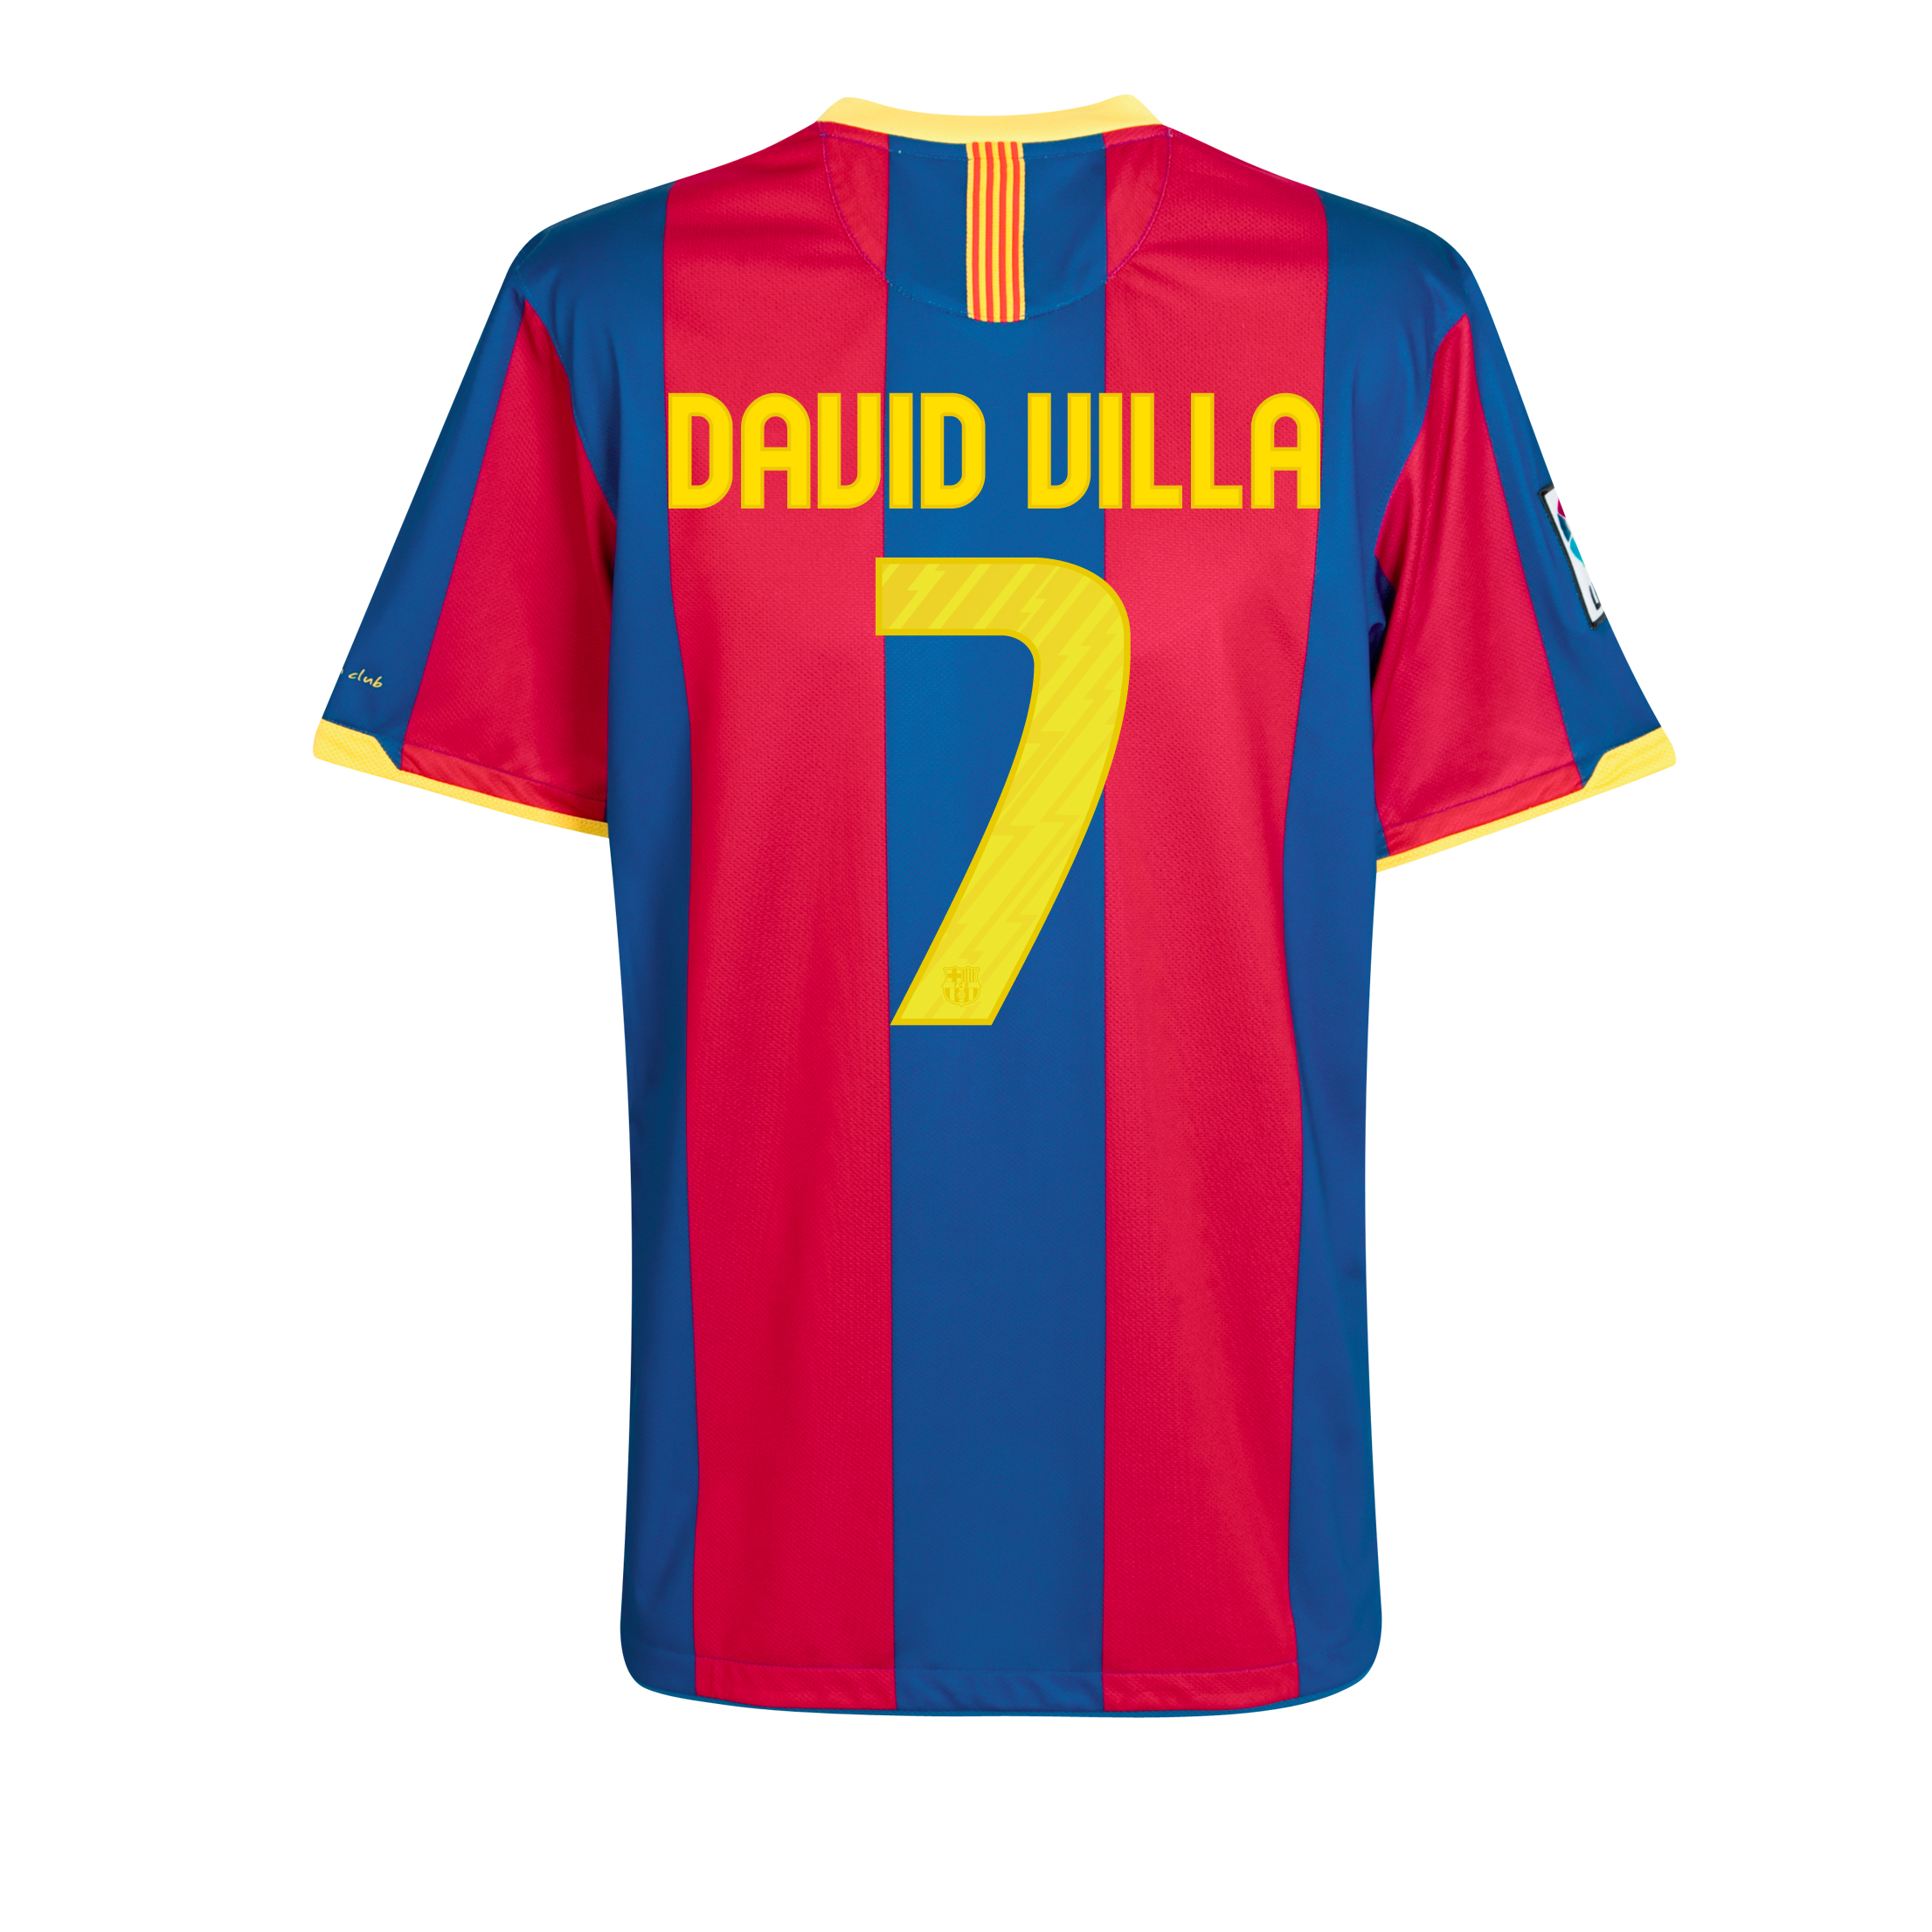 Barcelona Home Shirt 2010/11 with David Villa 7 printing